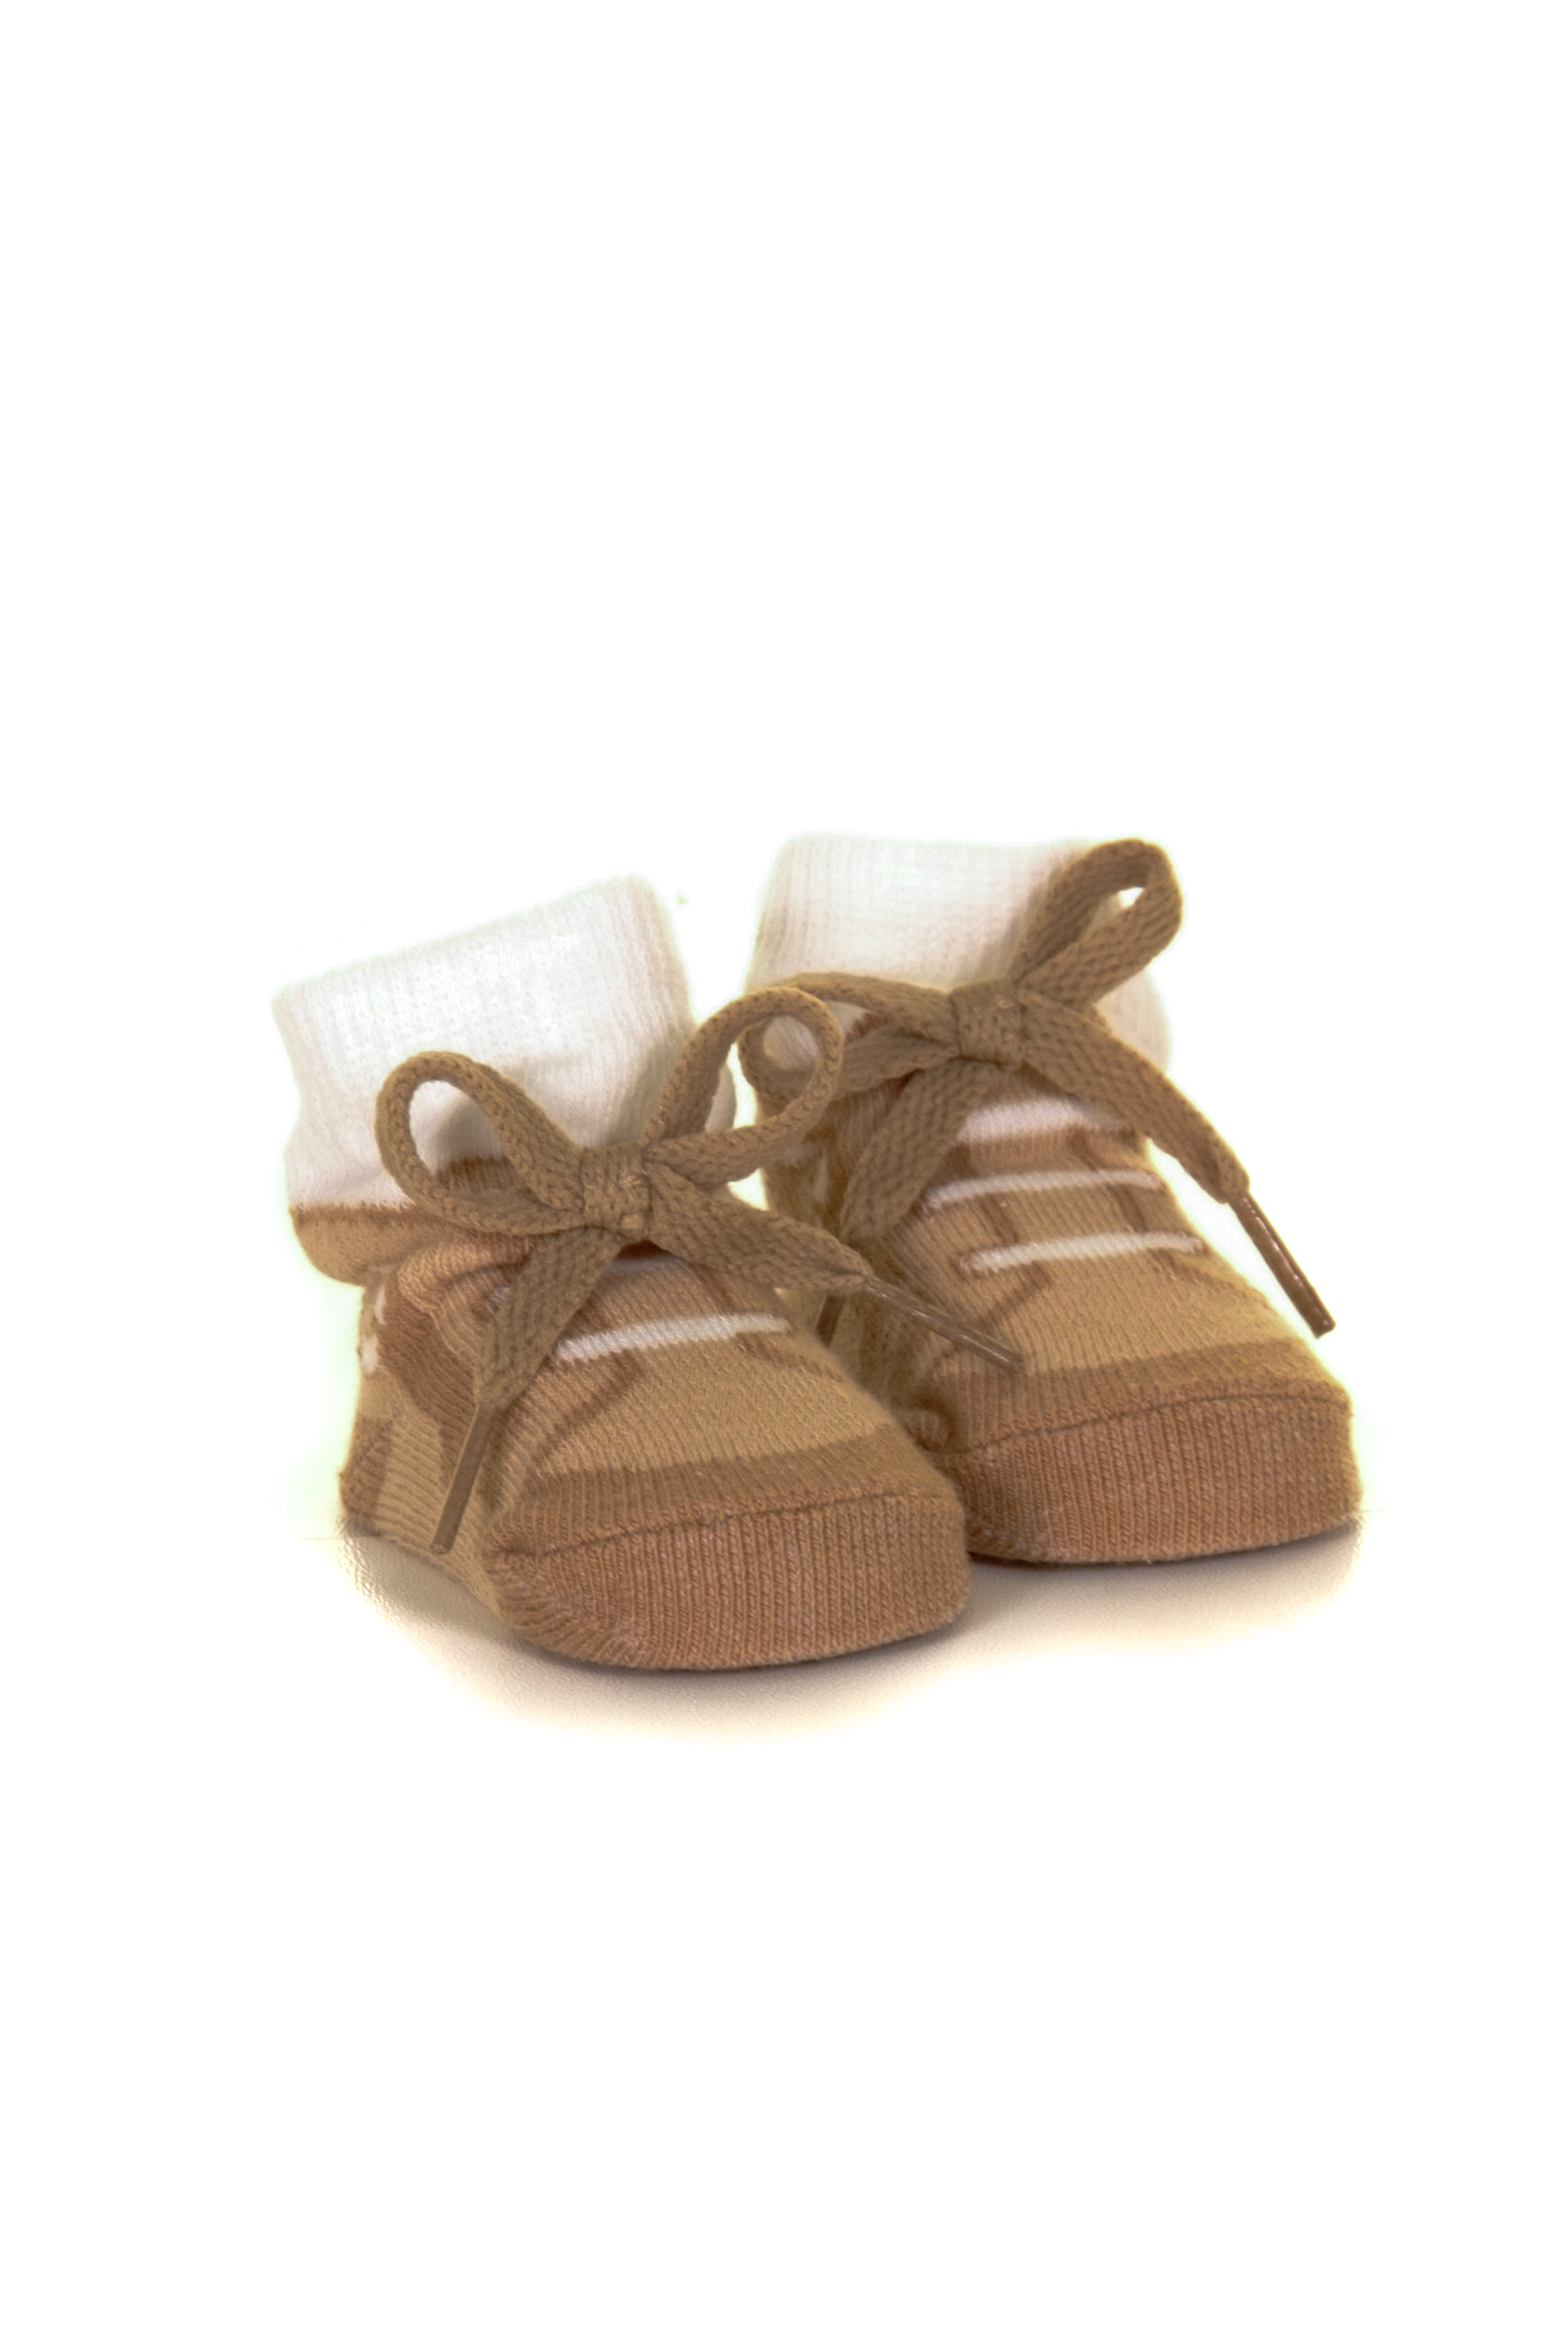 Brown baby booties gift